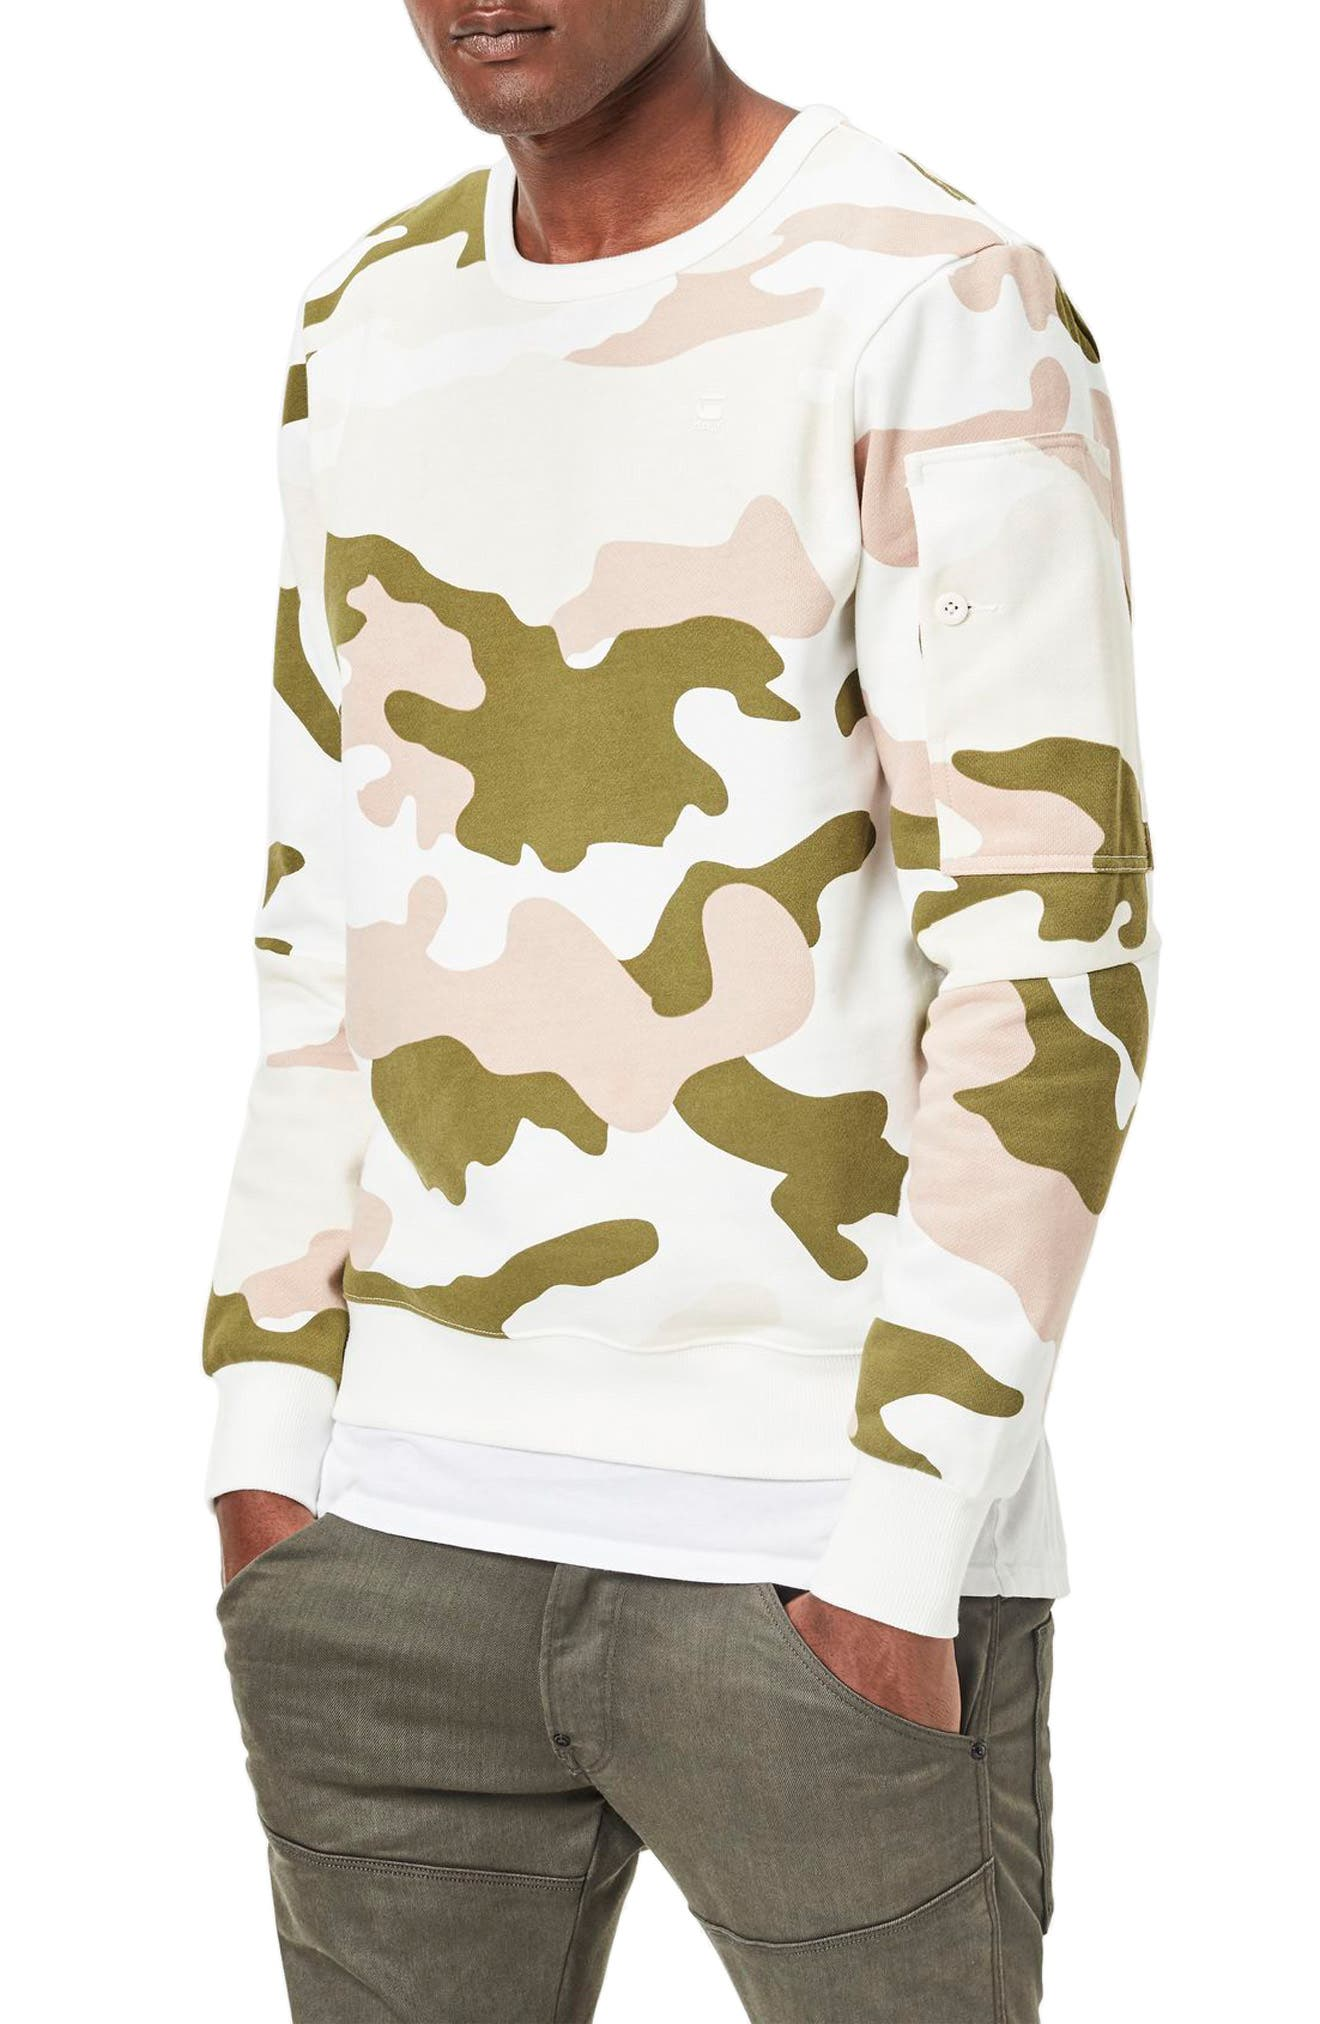 Main Image - G-Star Raw Stalt Camo Sweatshirt